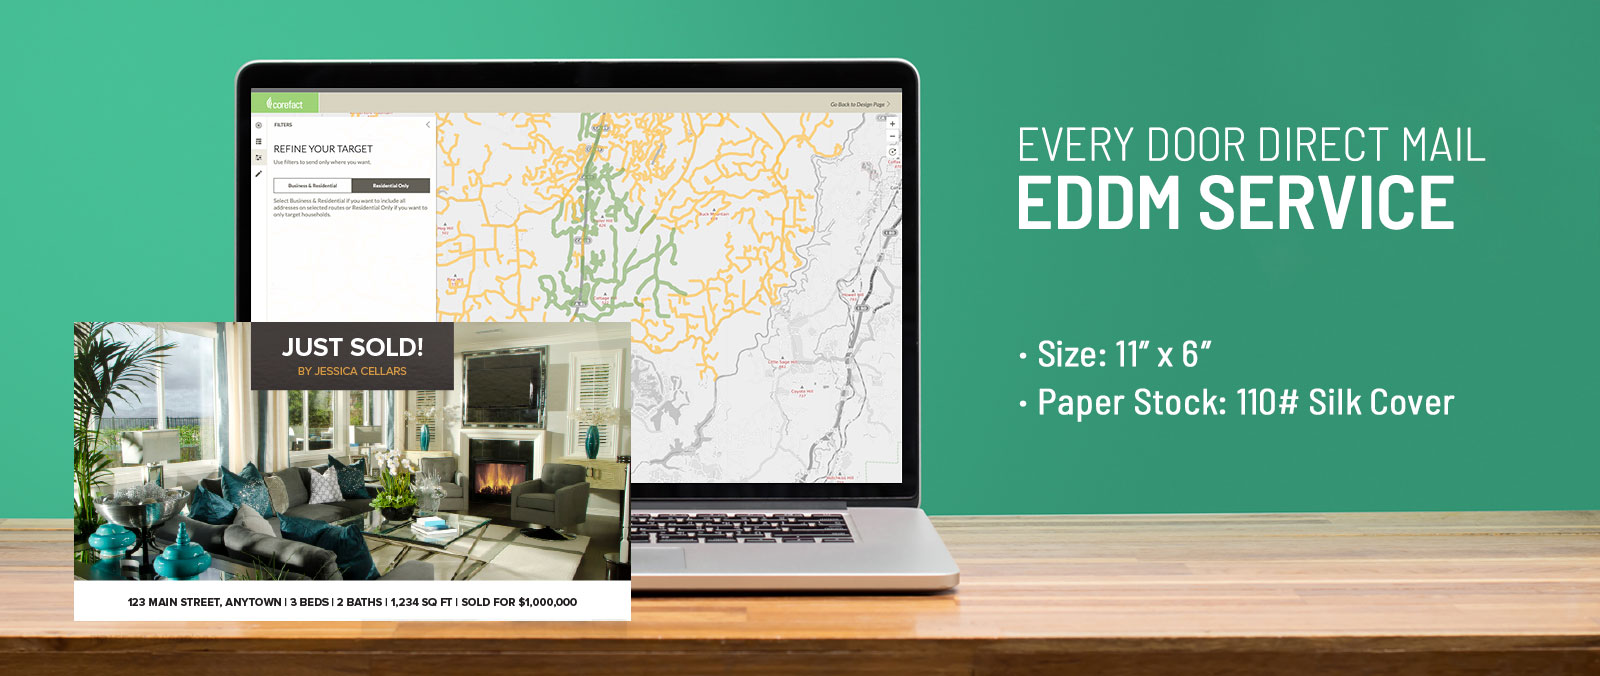 Every Door Direct Mail - Just Sold Postcards